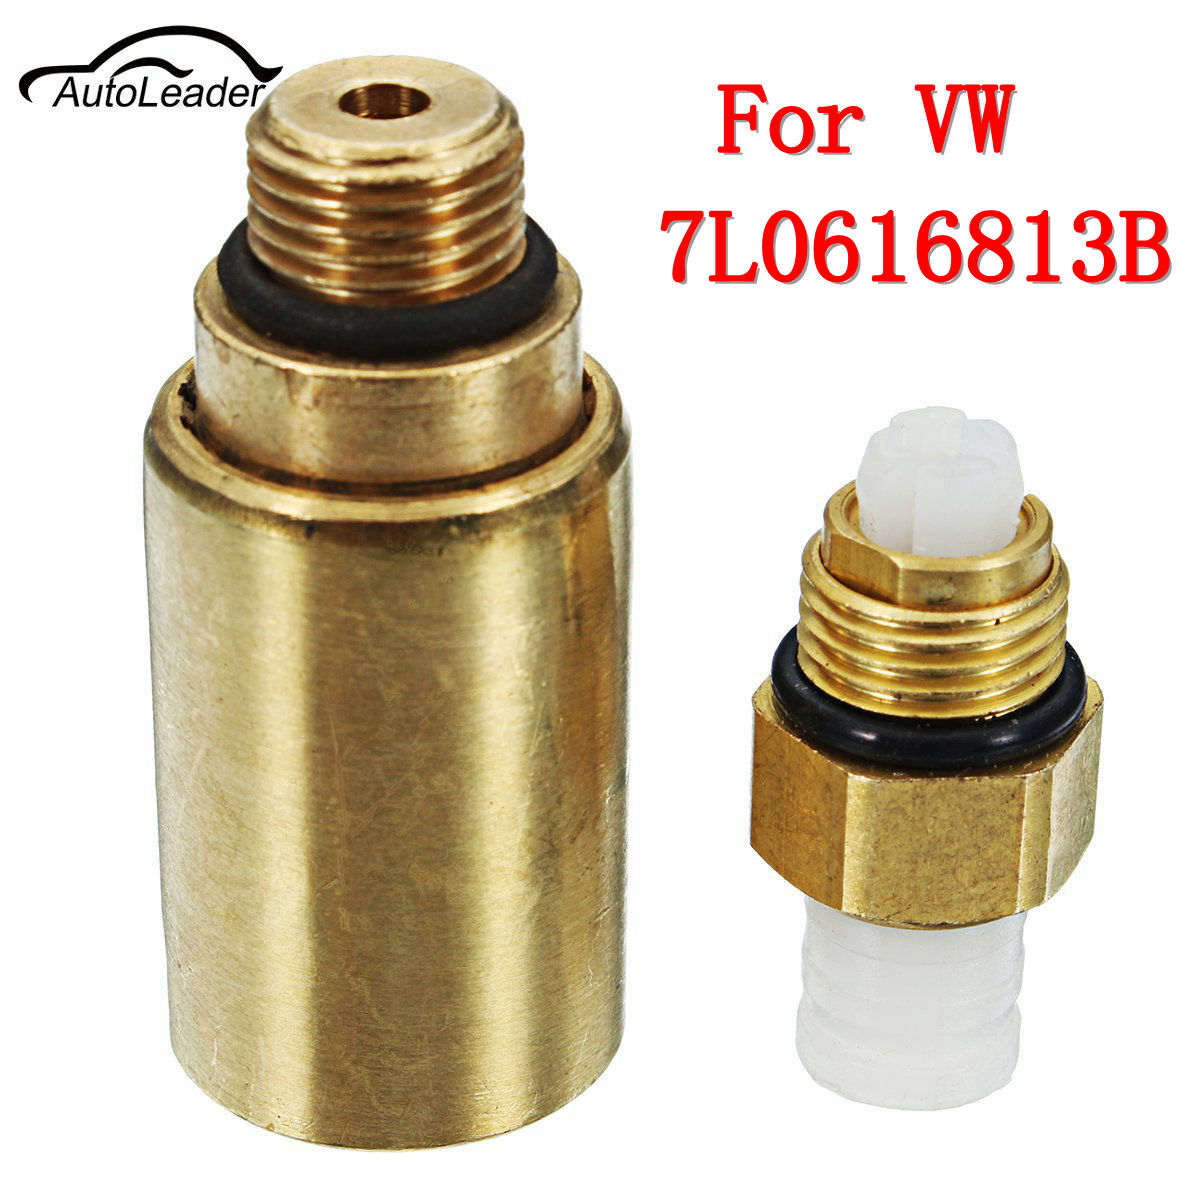 1Pcs 7L0616813B Air Suspension Risidual Pressure Valve 7L0 616 813 B for VW Touareg смесители для ванной и душа yinglong fedex 4 616 351 b 616 351 b